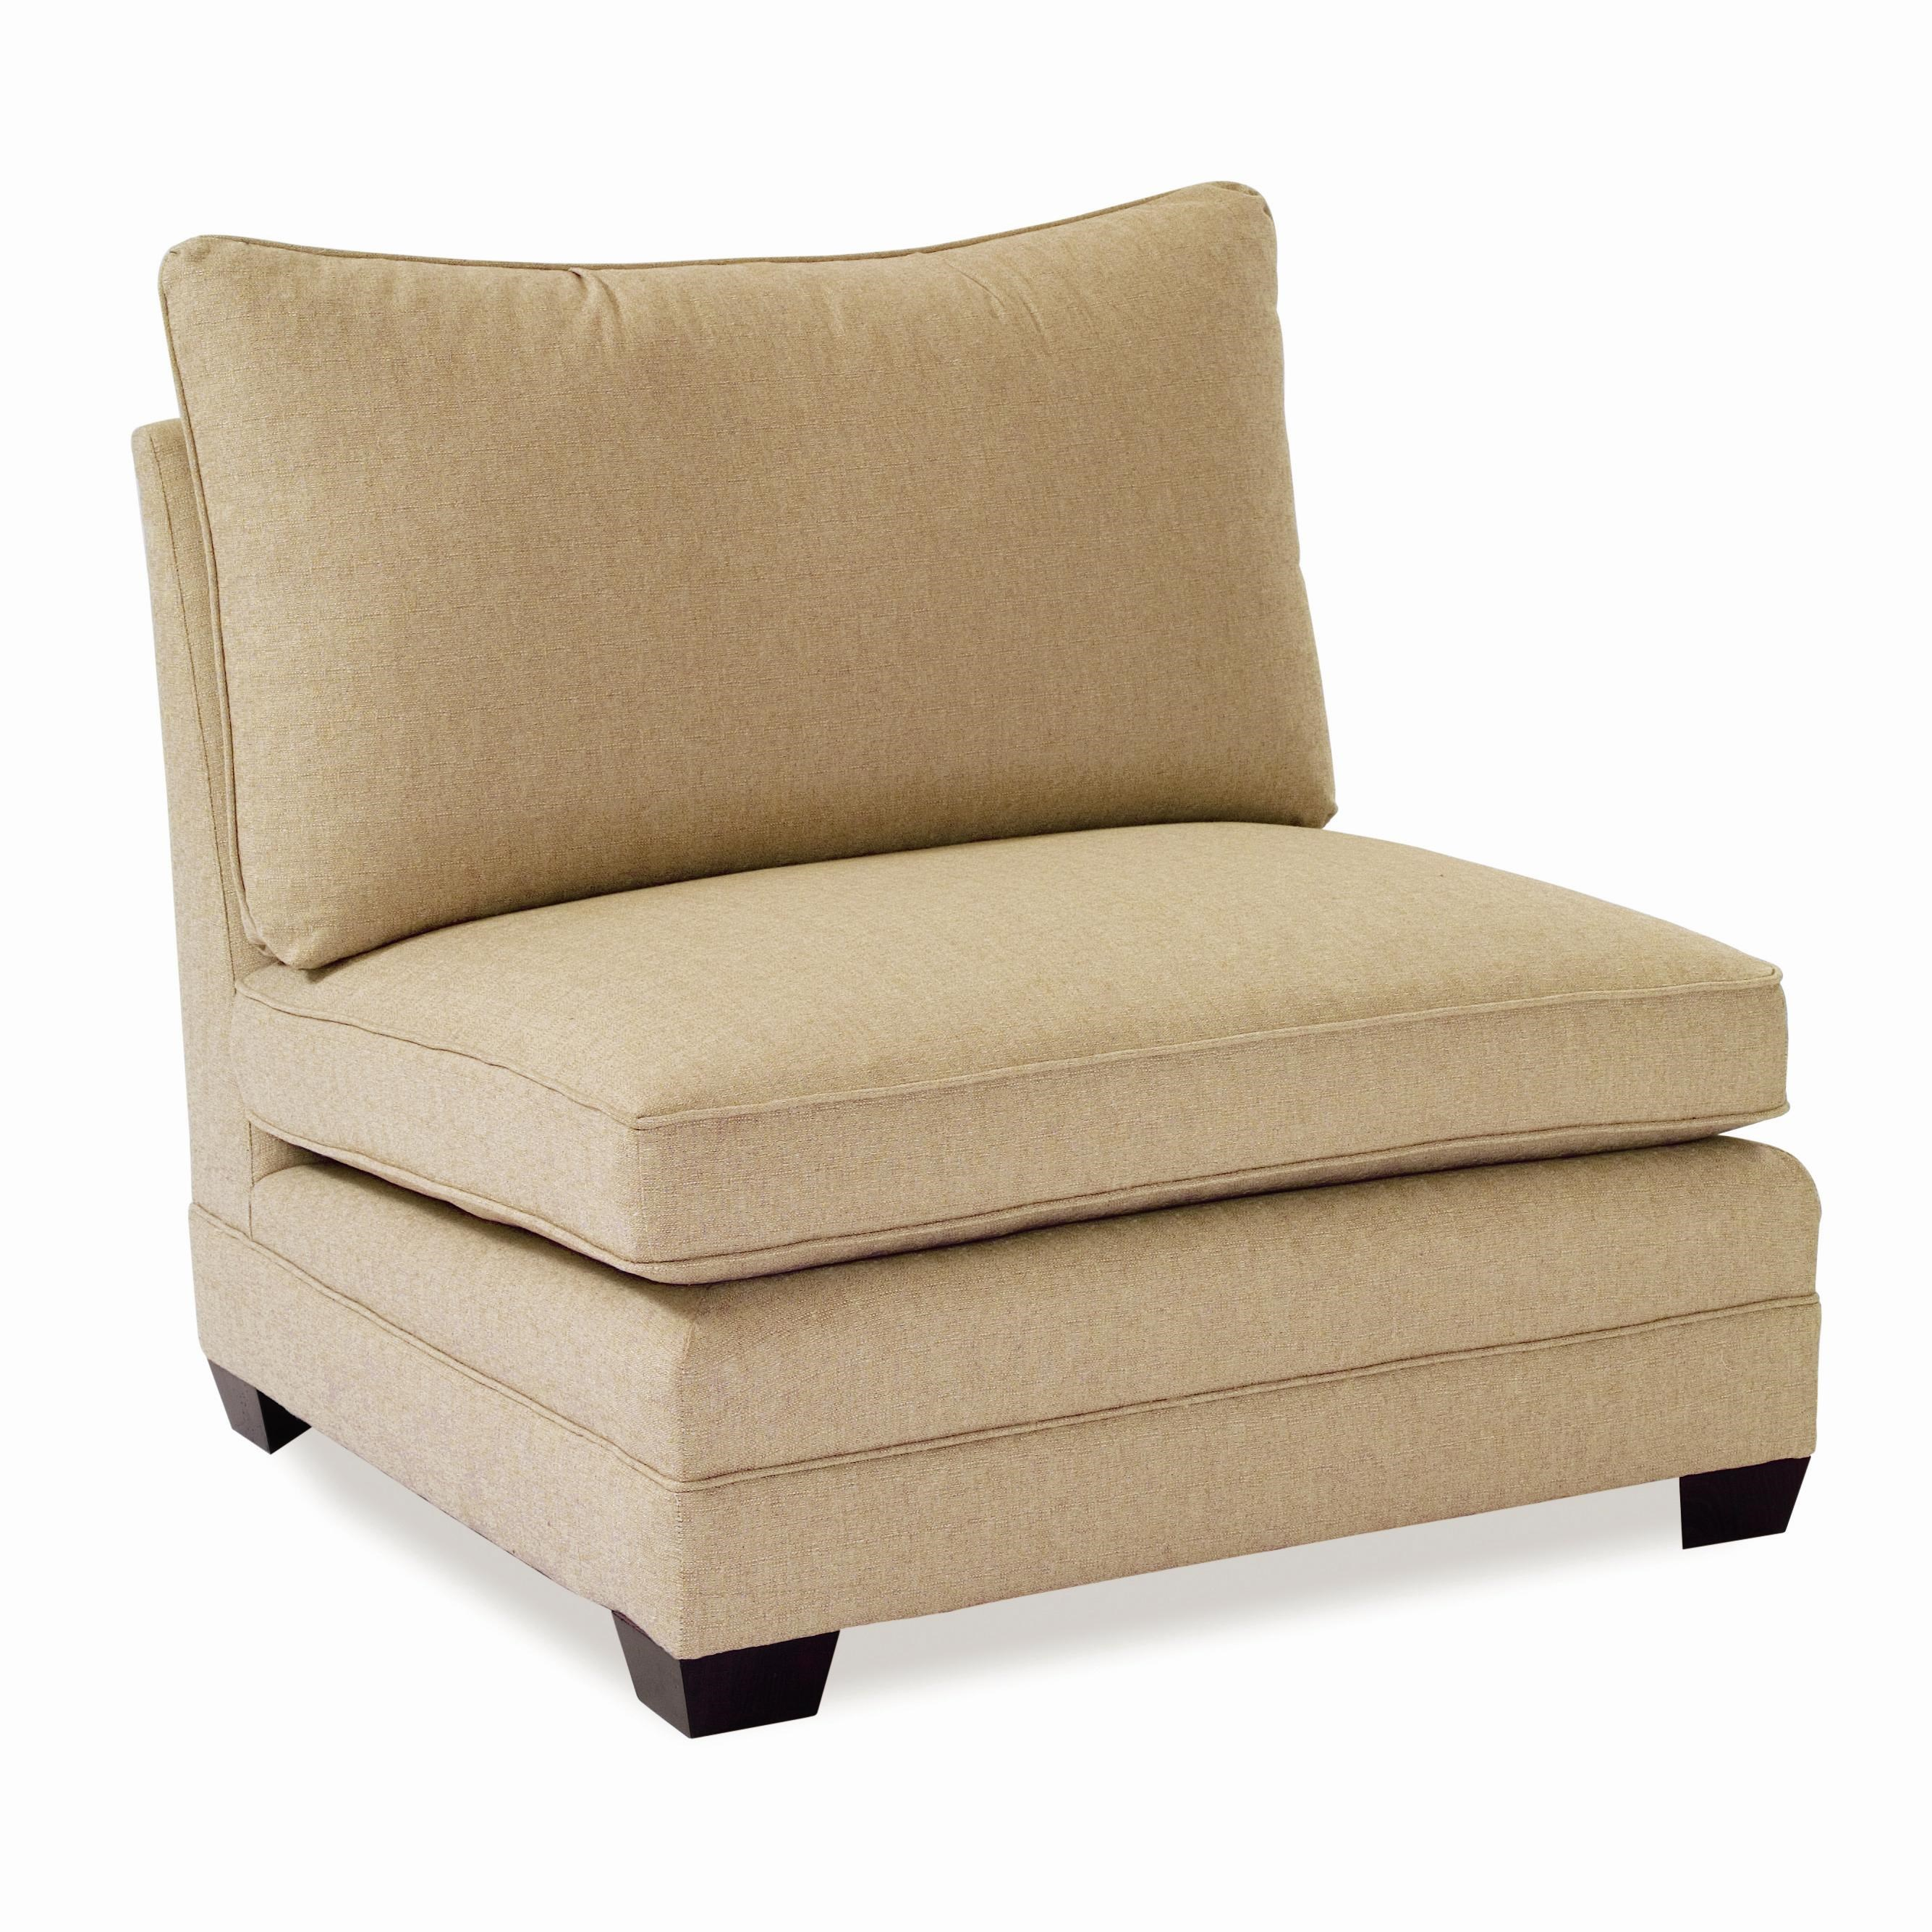 sam moore margo large armless chair dunk u0026 bright furniture sectional modular components